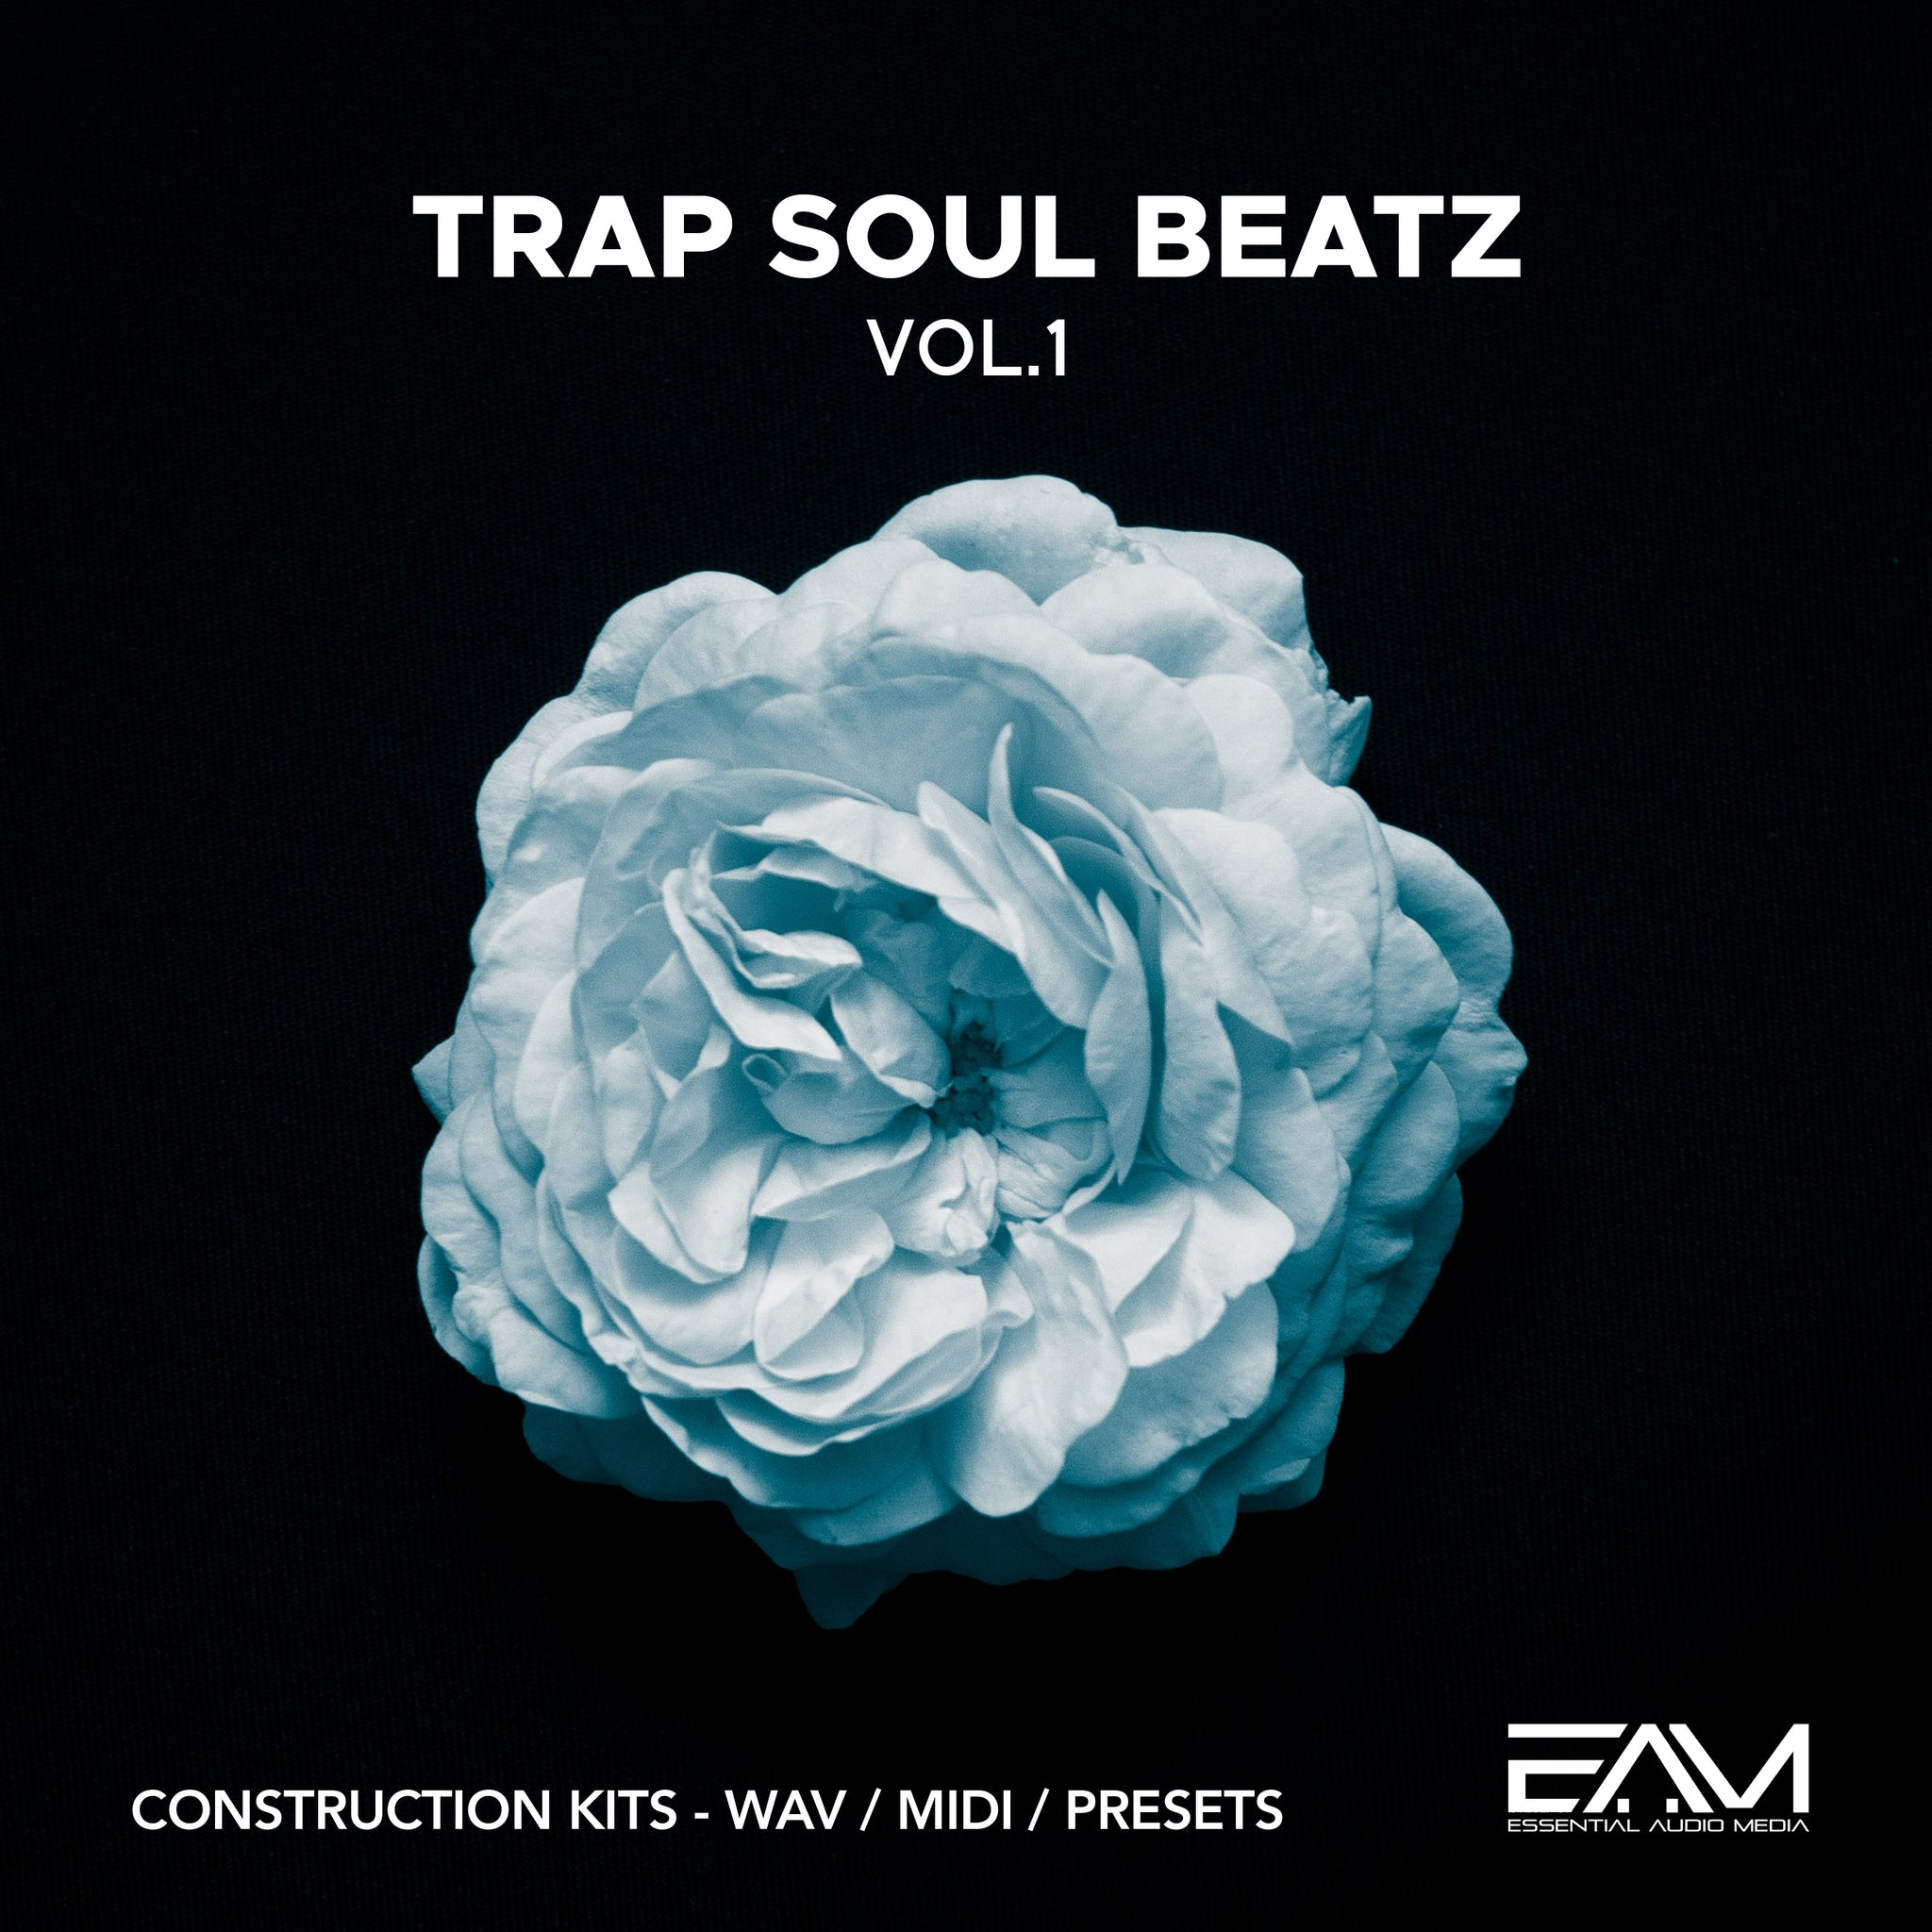 Trap Soul Beatz Vol.1